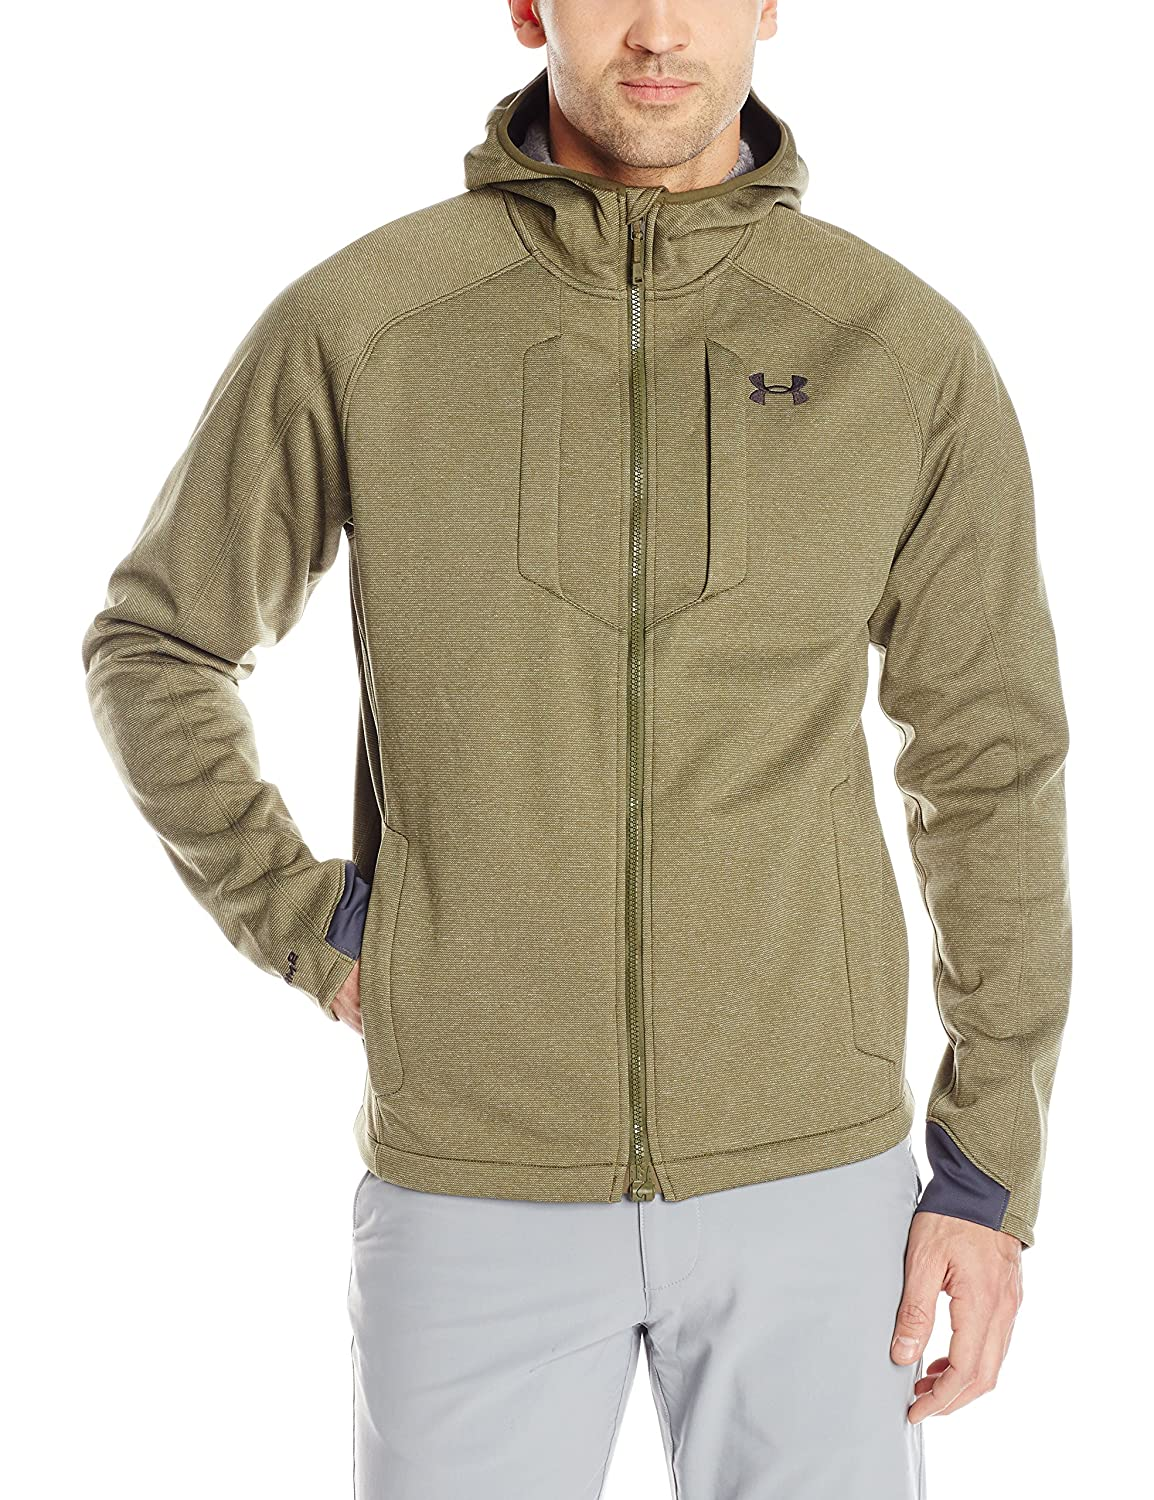 Under Armour Mens UA Storm Bacca Softershell